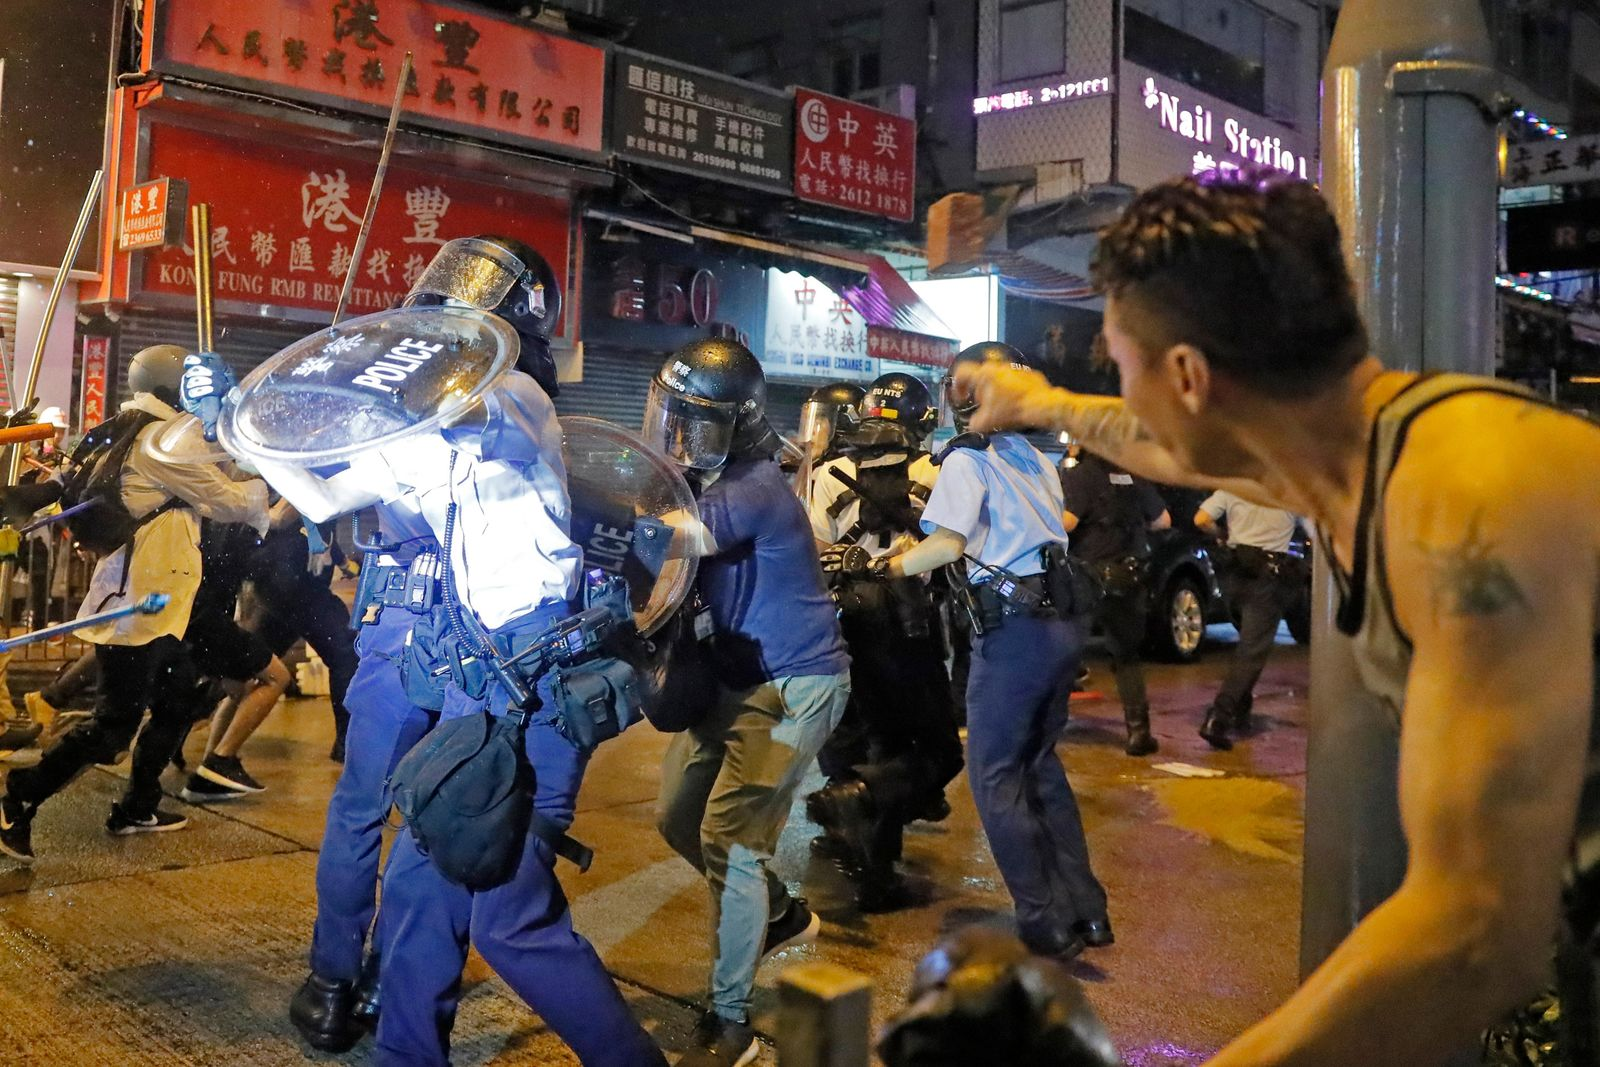 A man throws a brick to policemen on a street during a protest in Hong Kong, Sunday, Aug. 25, 2019. (AP Photo/Kin Cheung)